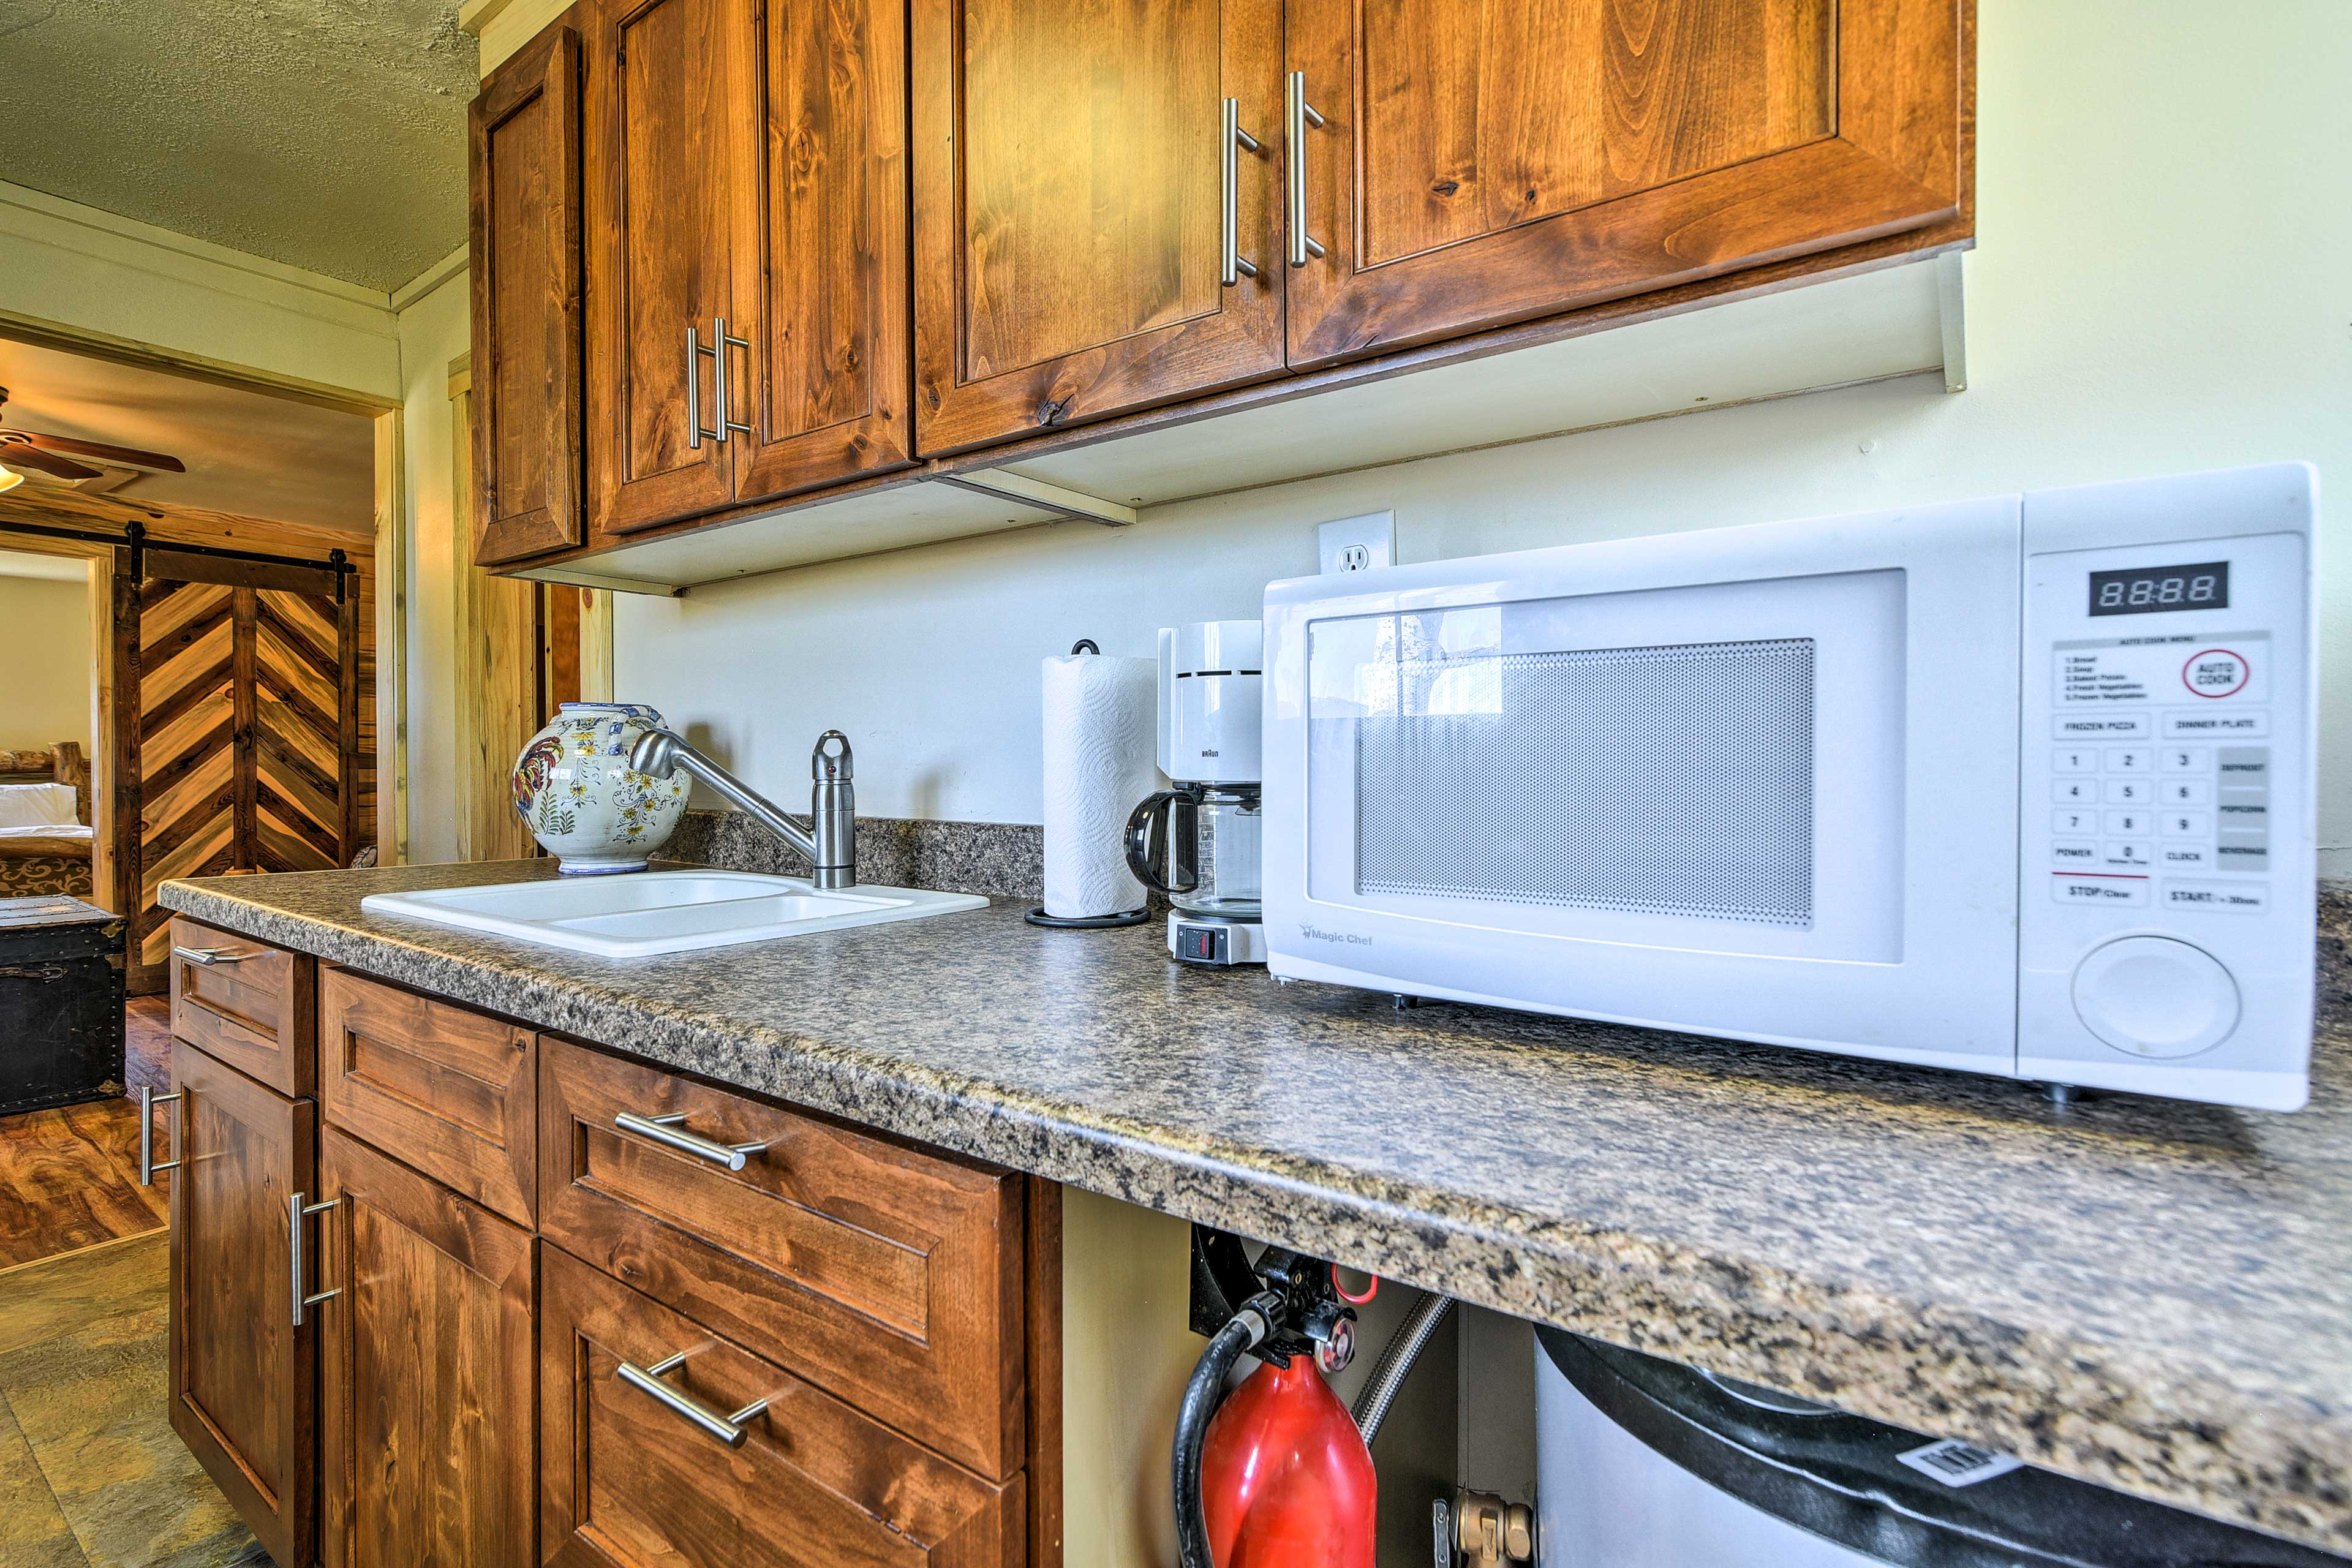 The well-equipped kitchen has everything you need to prepare delicious meals.